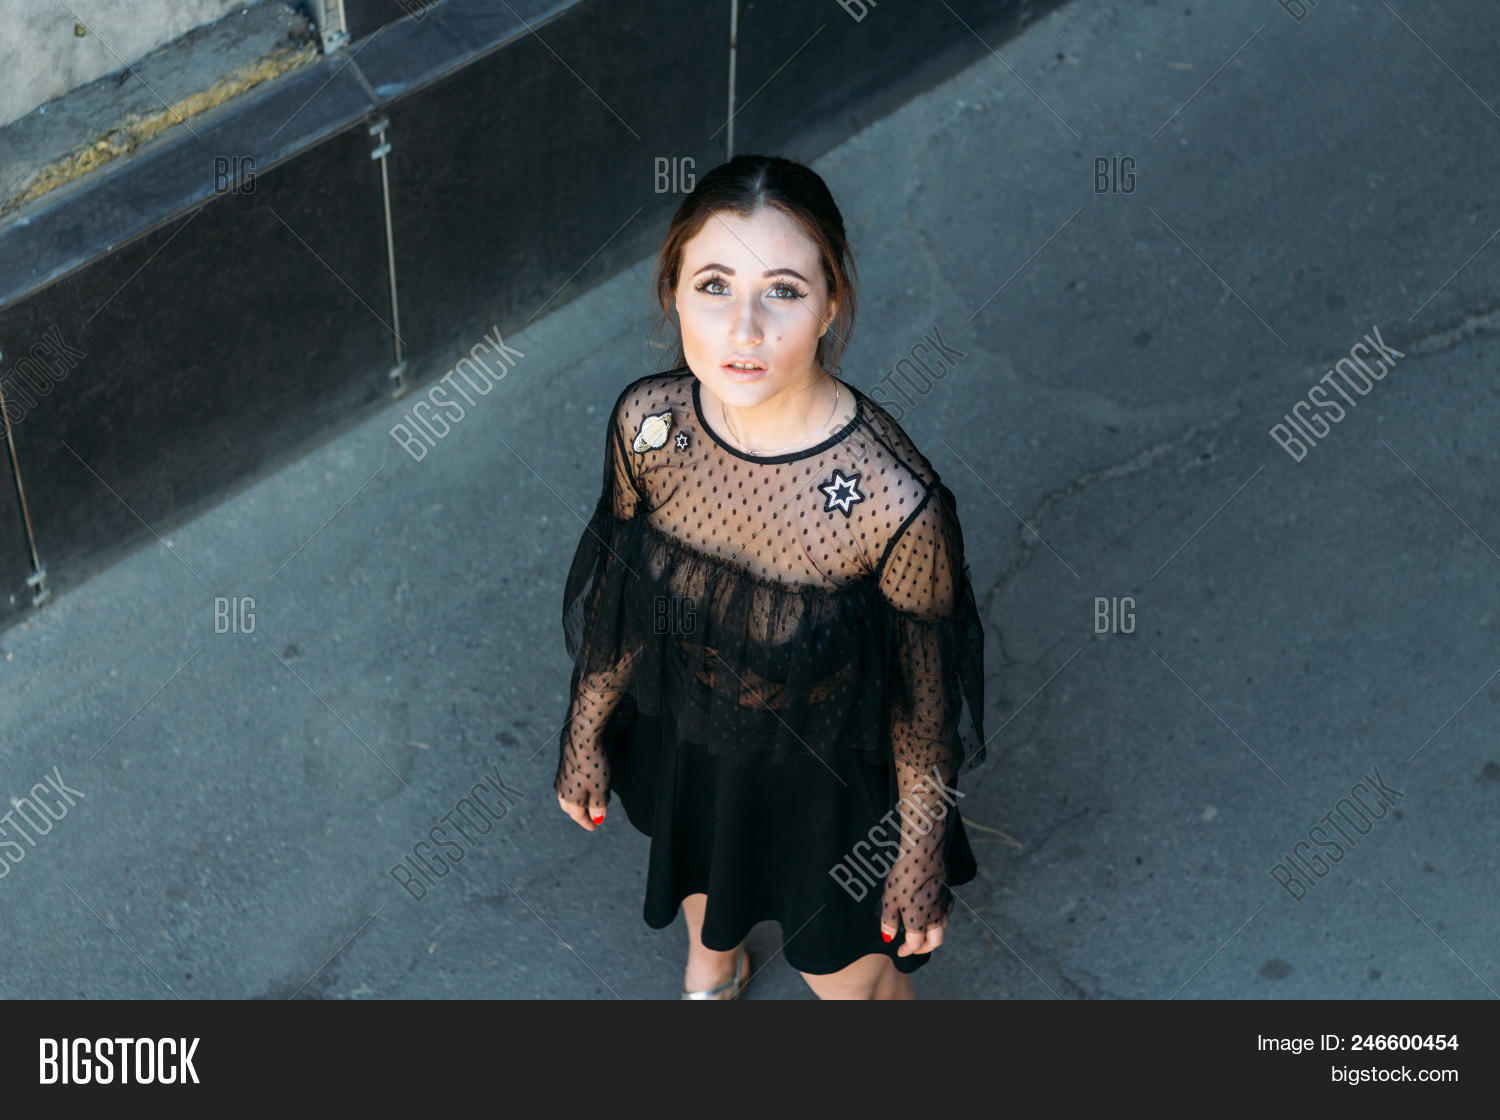 Girl Looks Sky Image Photo Free Trial Bigstock